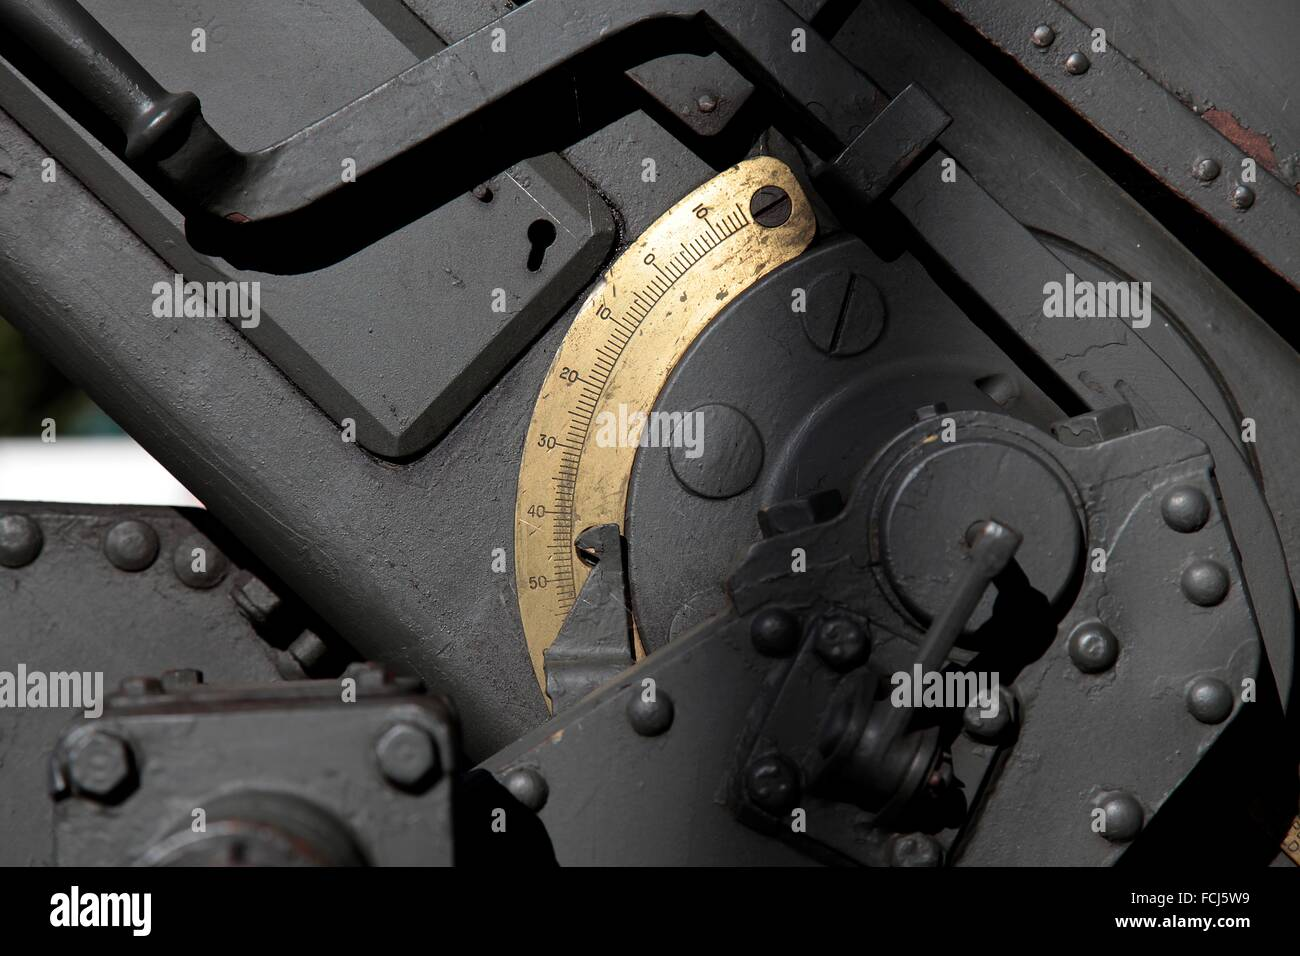 Detail mechanisms of an artillery piece. - Stock Image